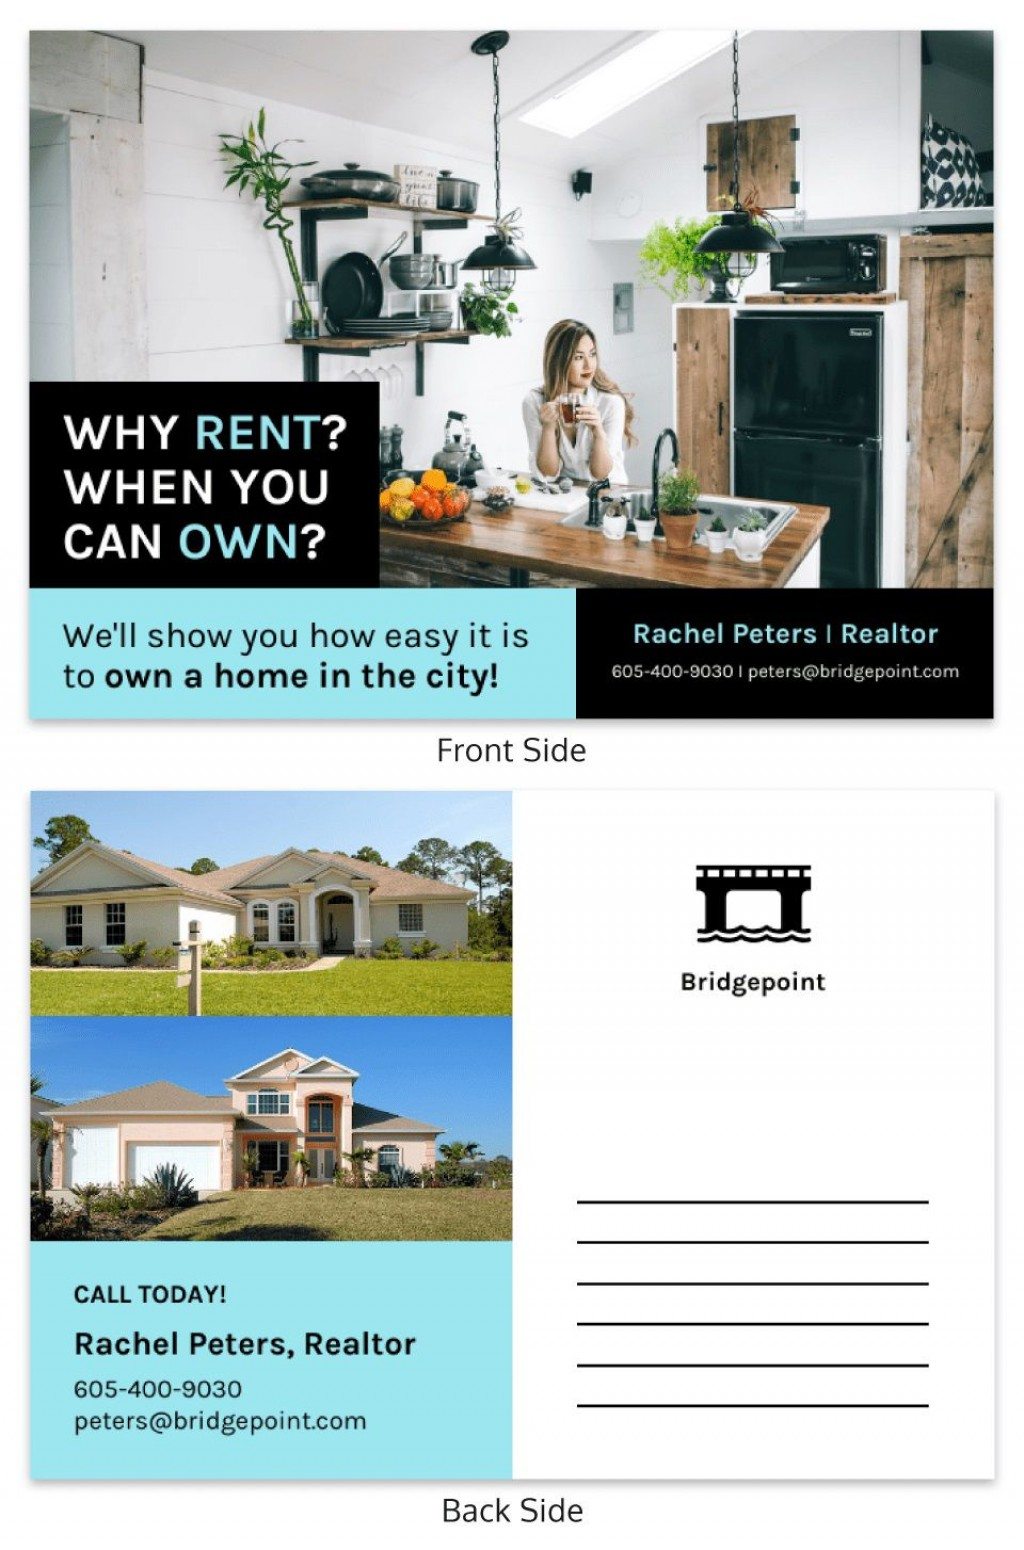 001 Fascinating Real Estate Postcard Template Design  Agent For Photoshop InvestorLarge